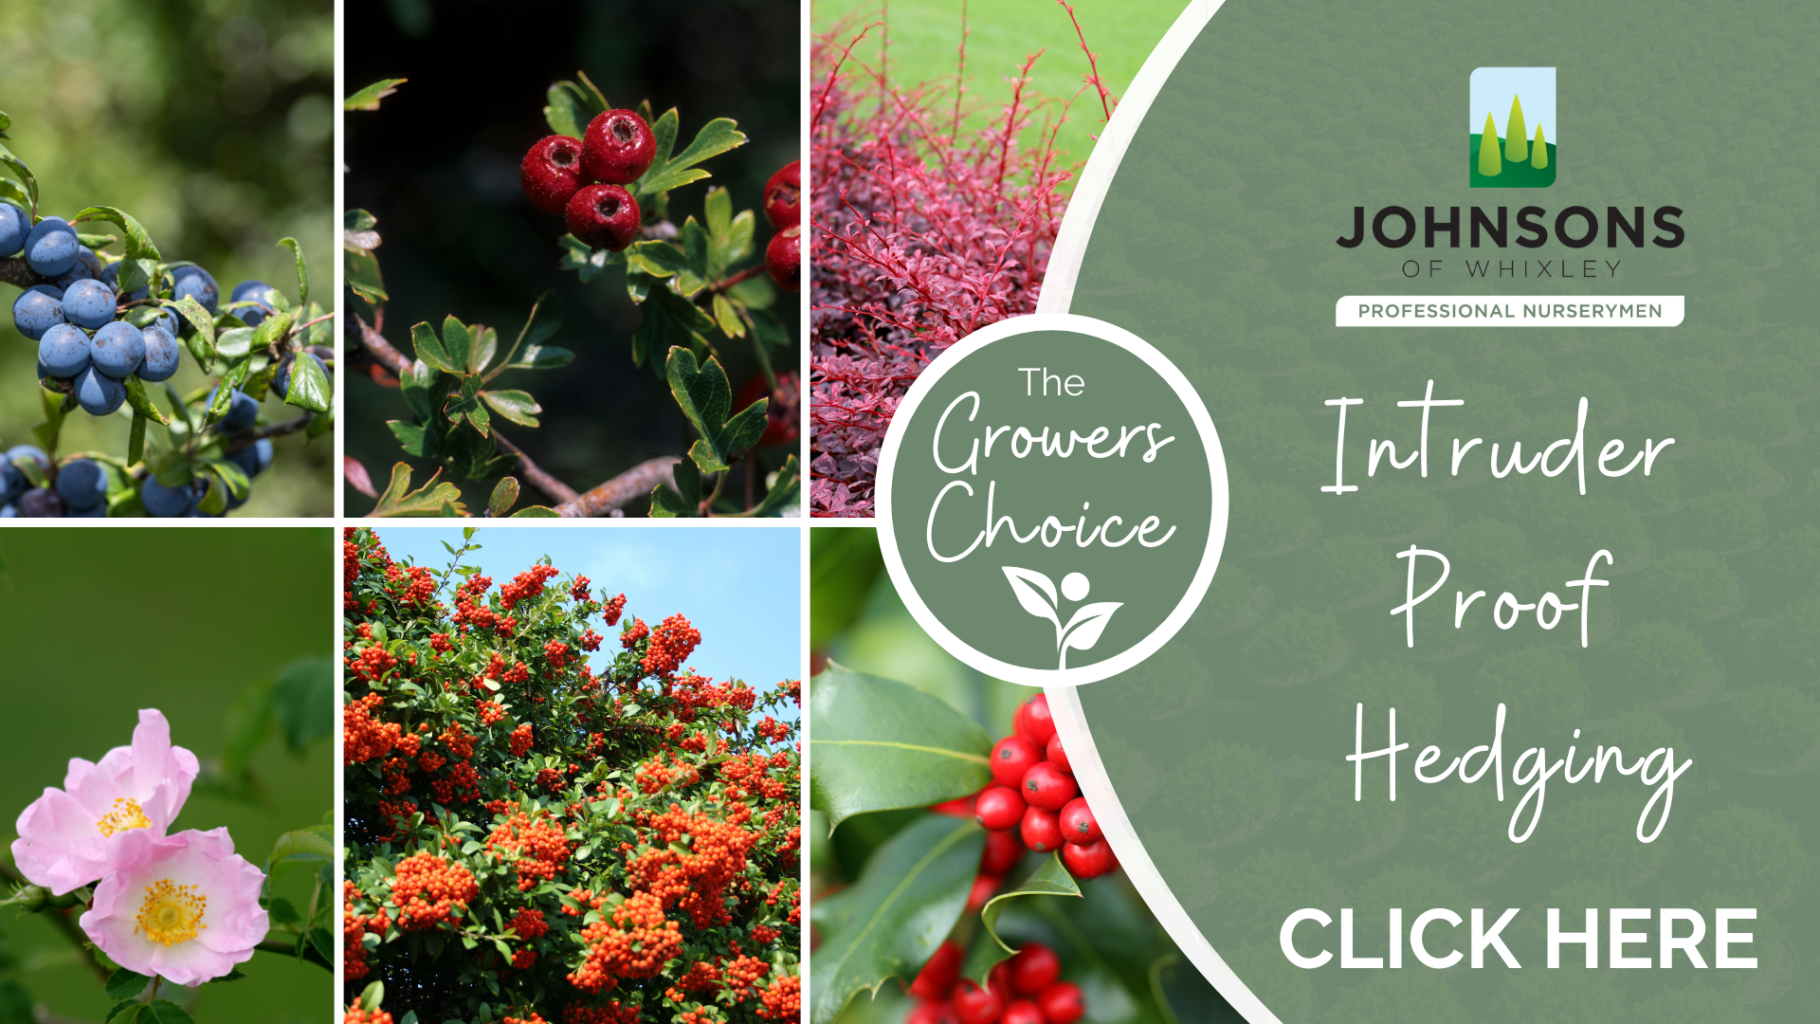 The Growers Choice: Intruder proof hedging